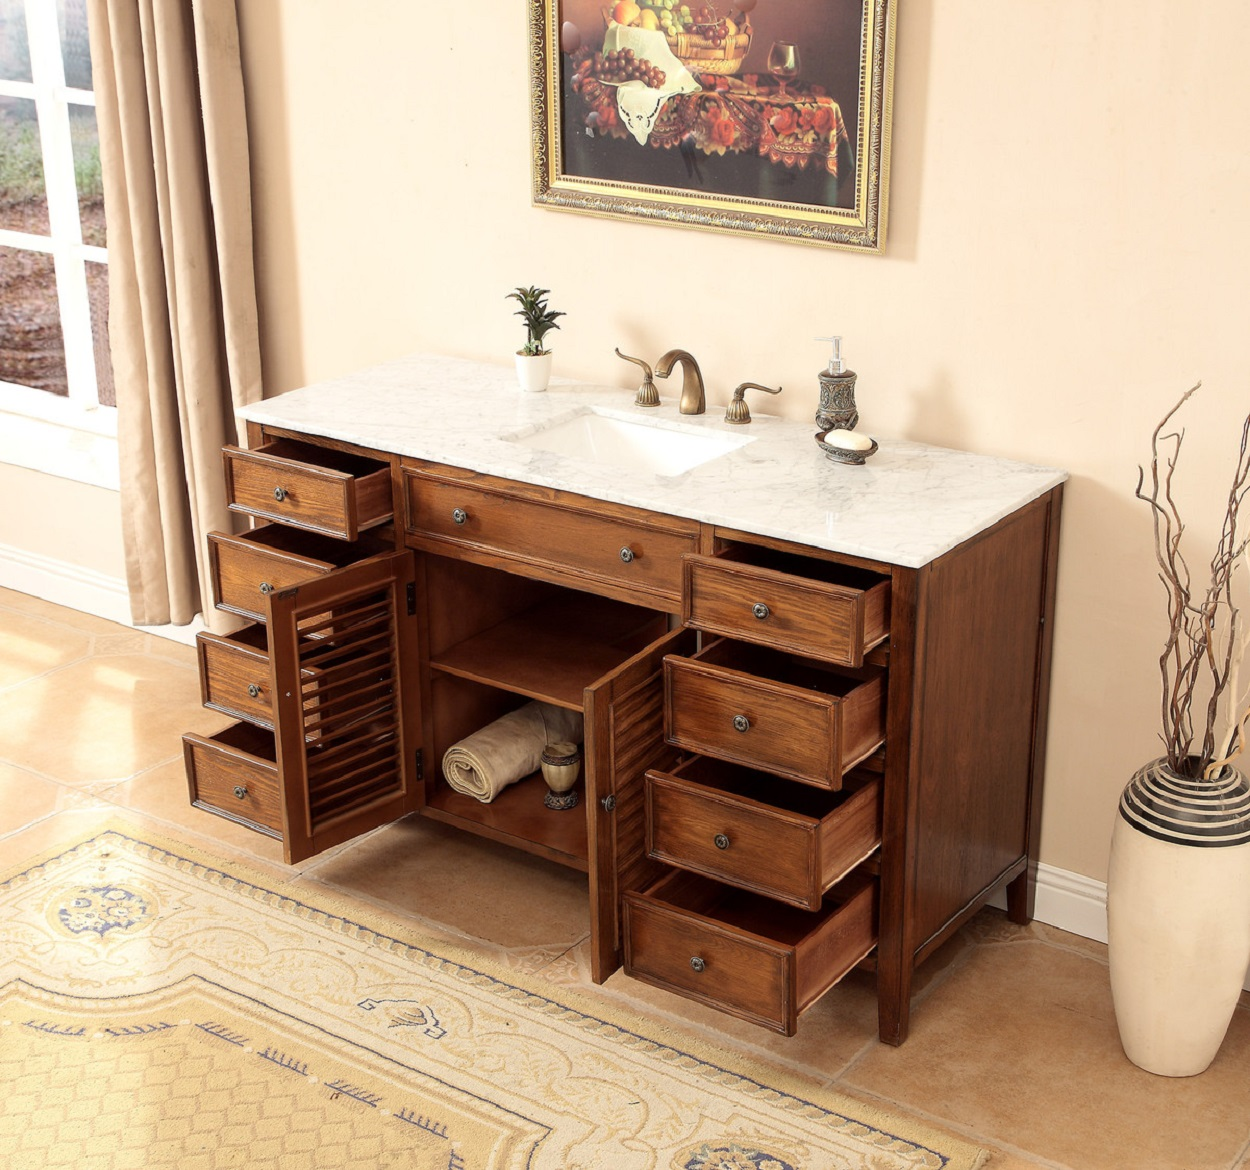 Nautical Style Bathroom Vanities: 58 Inch Bathroom Vanity Coastal Cottage Beach Style Medium